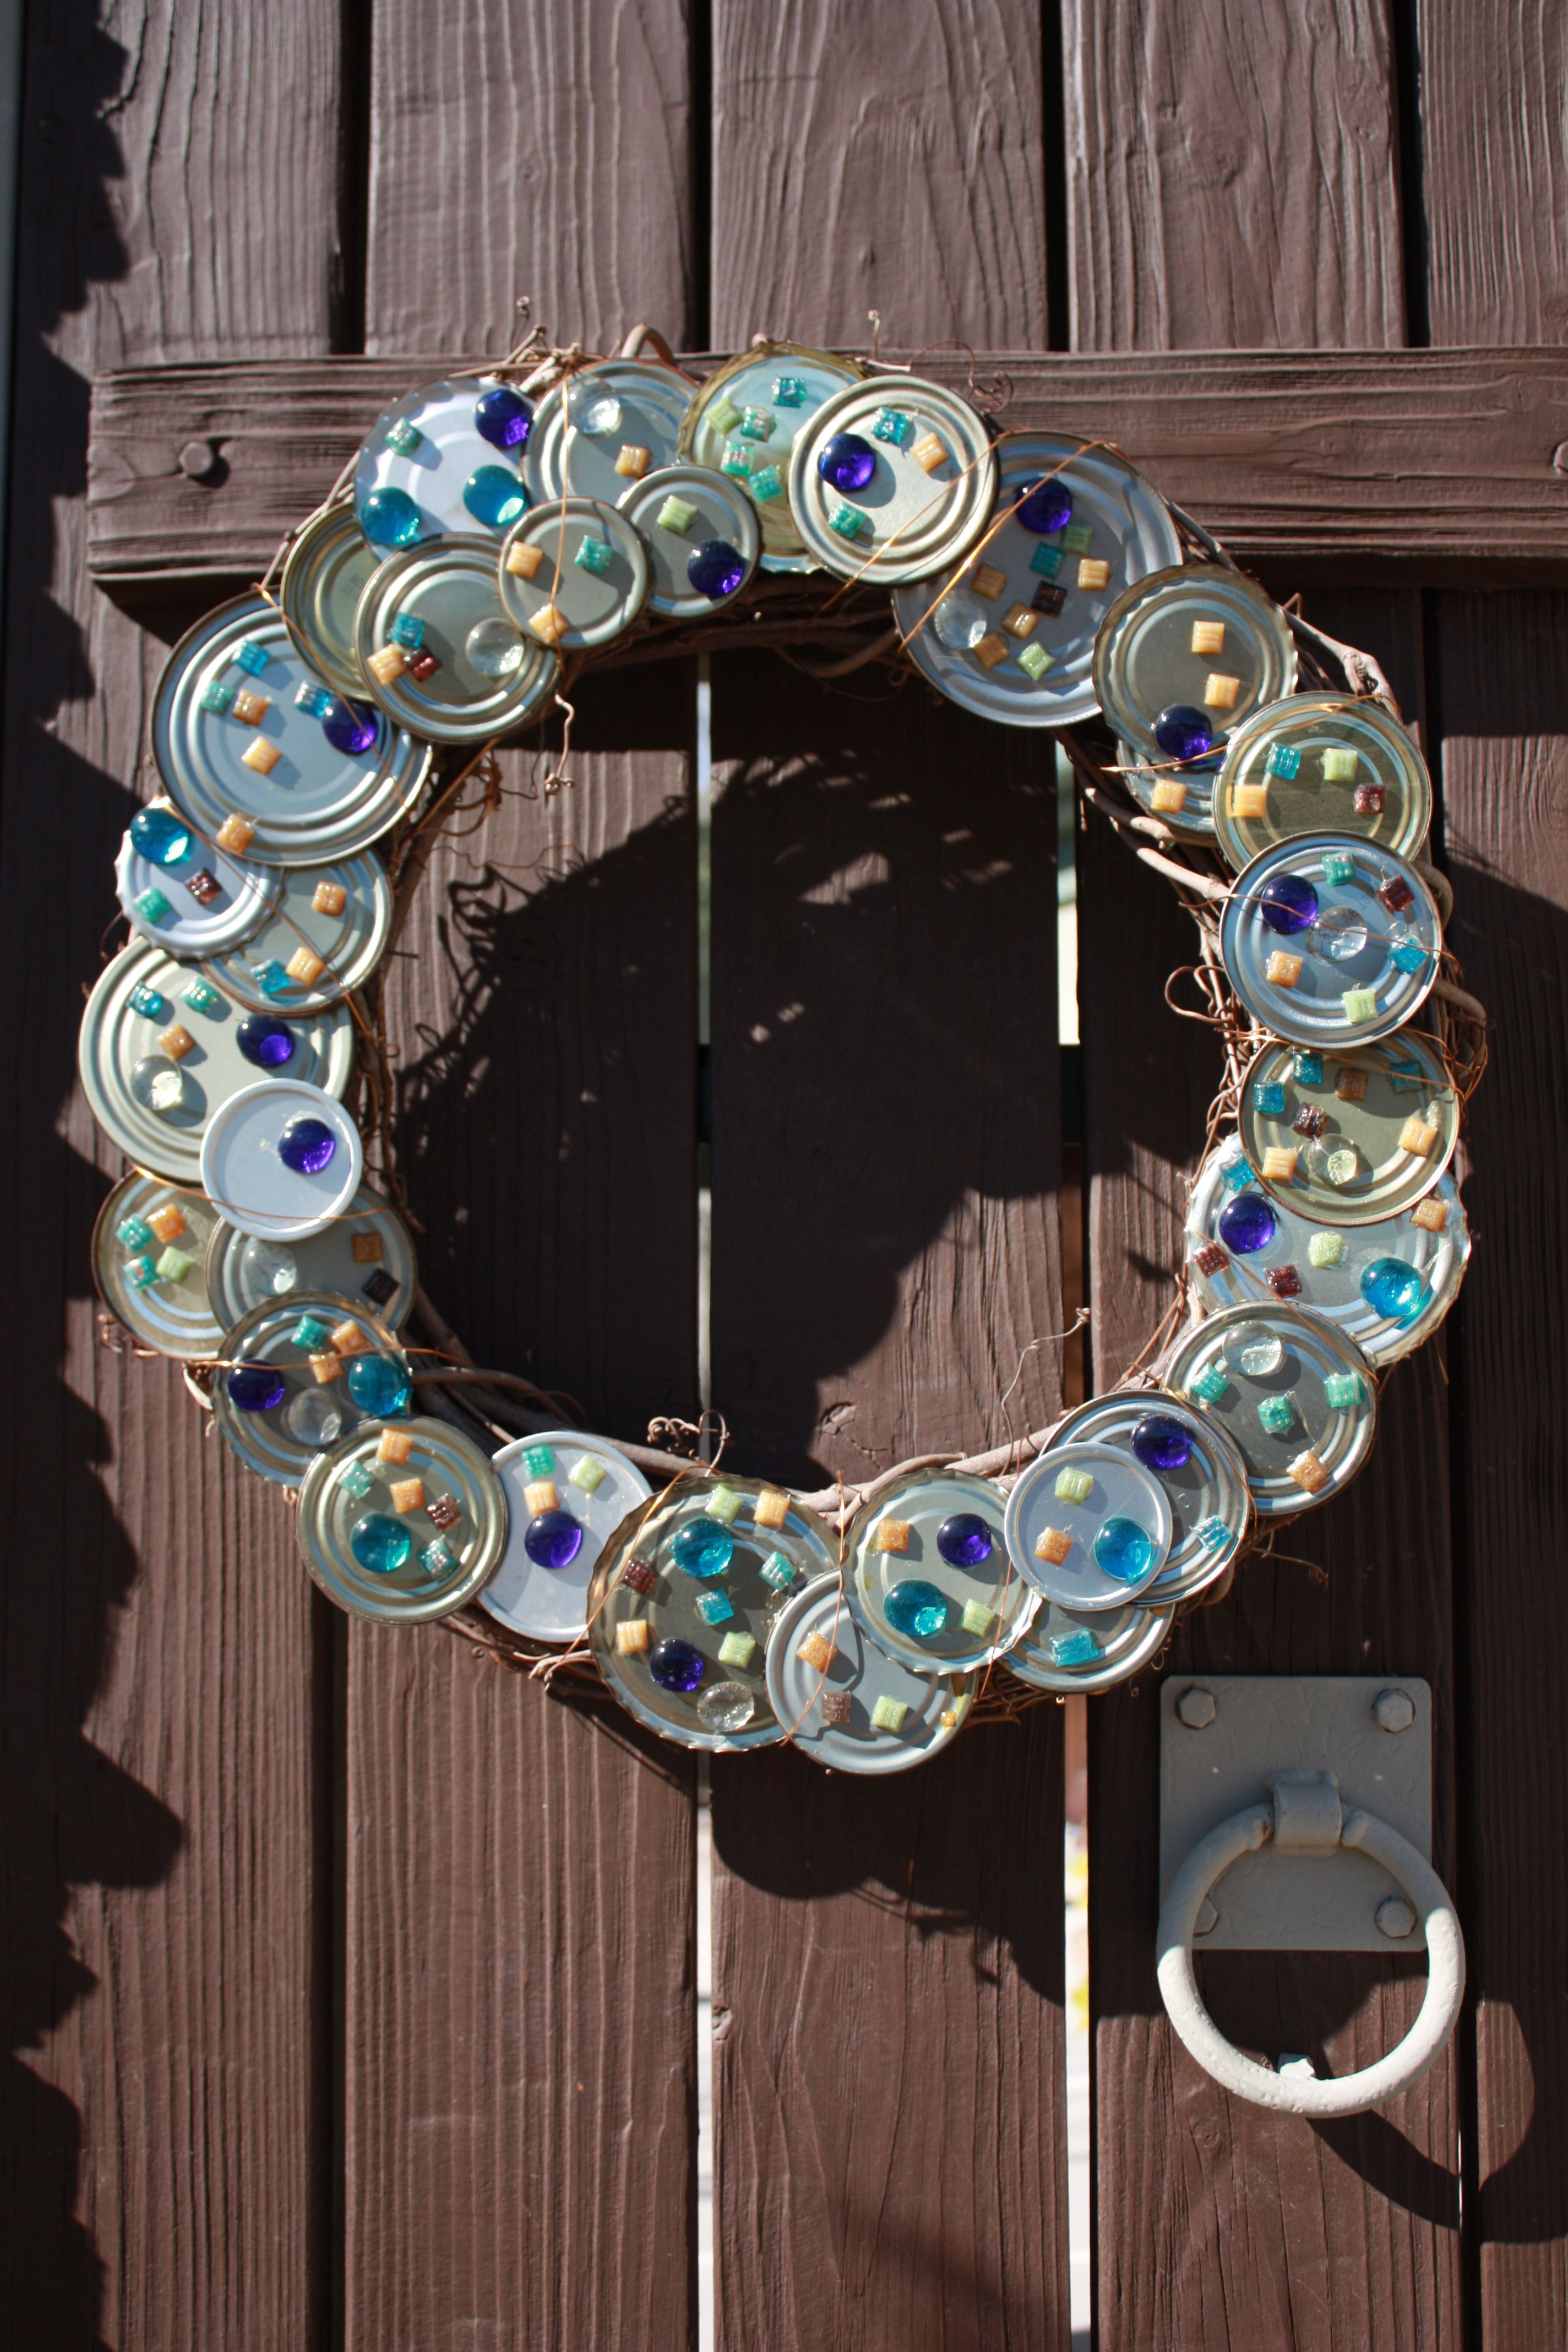 Wreath For Our Courtyard Doors For In Between The Holidays Glued